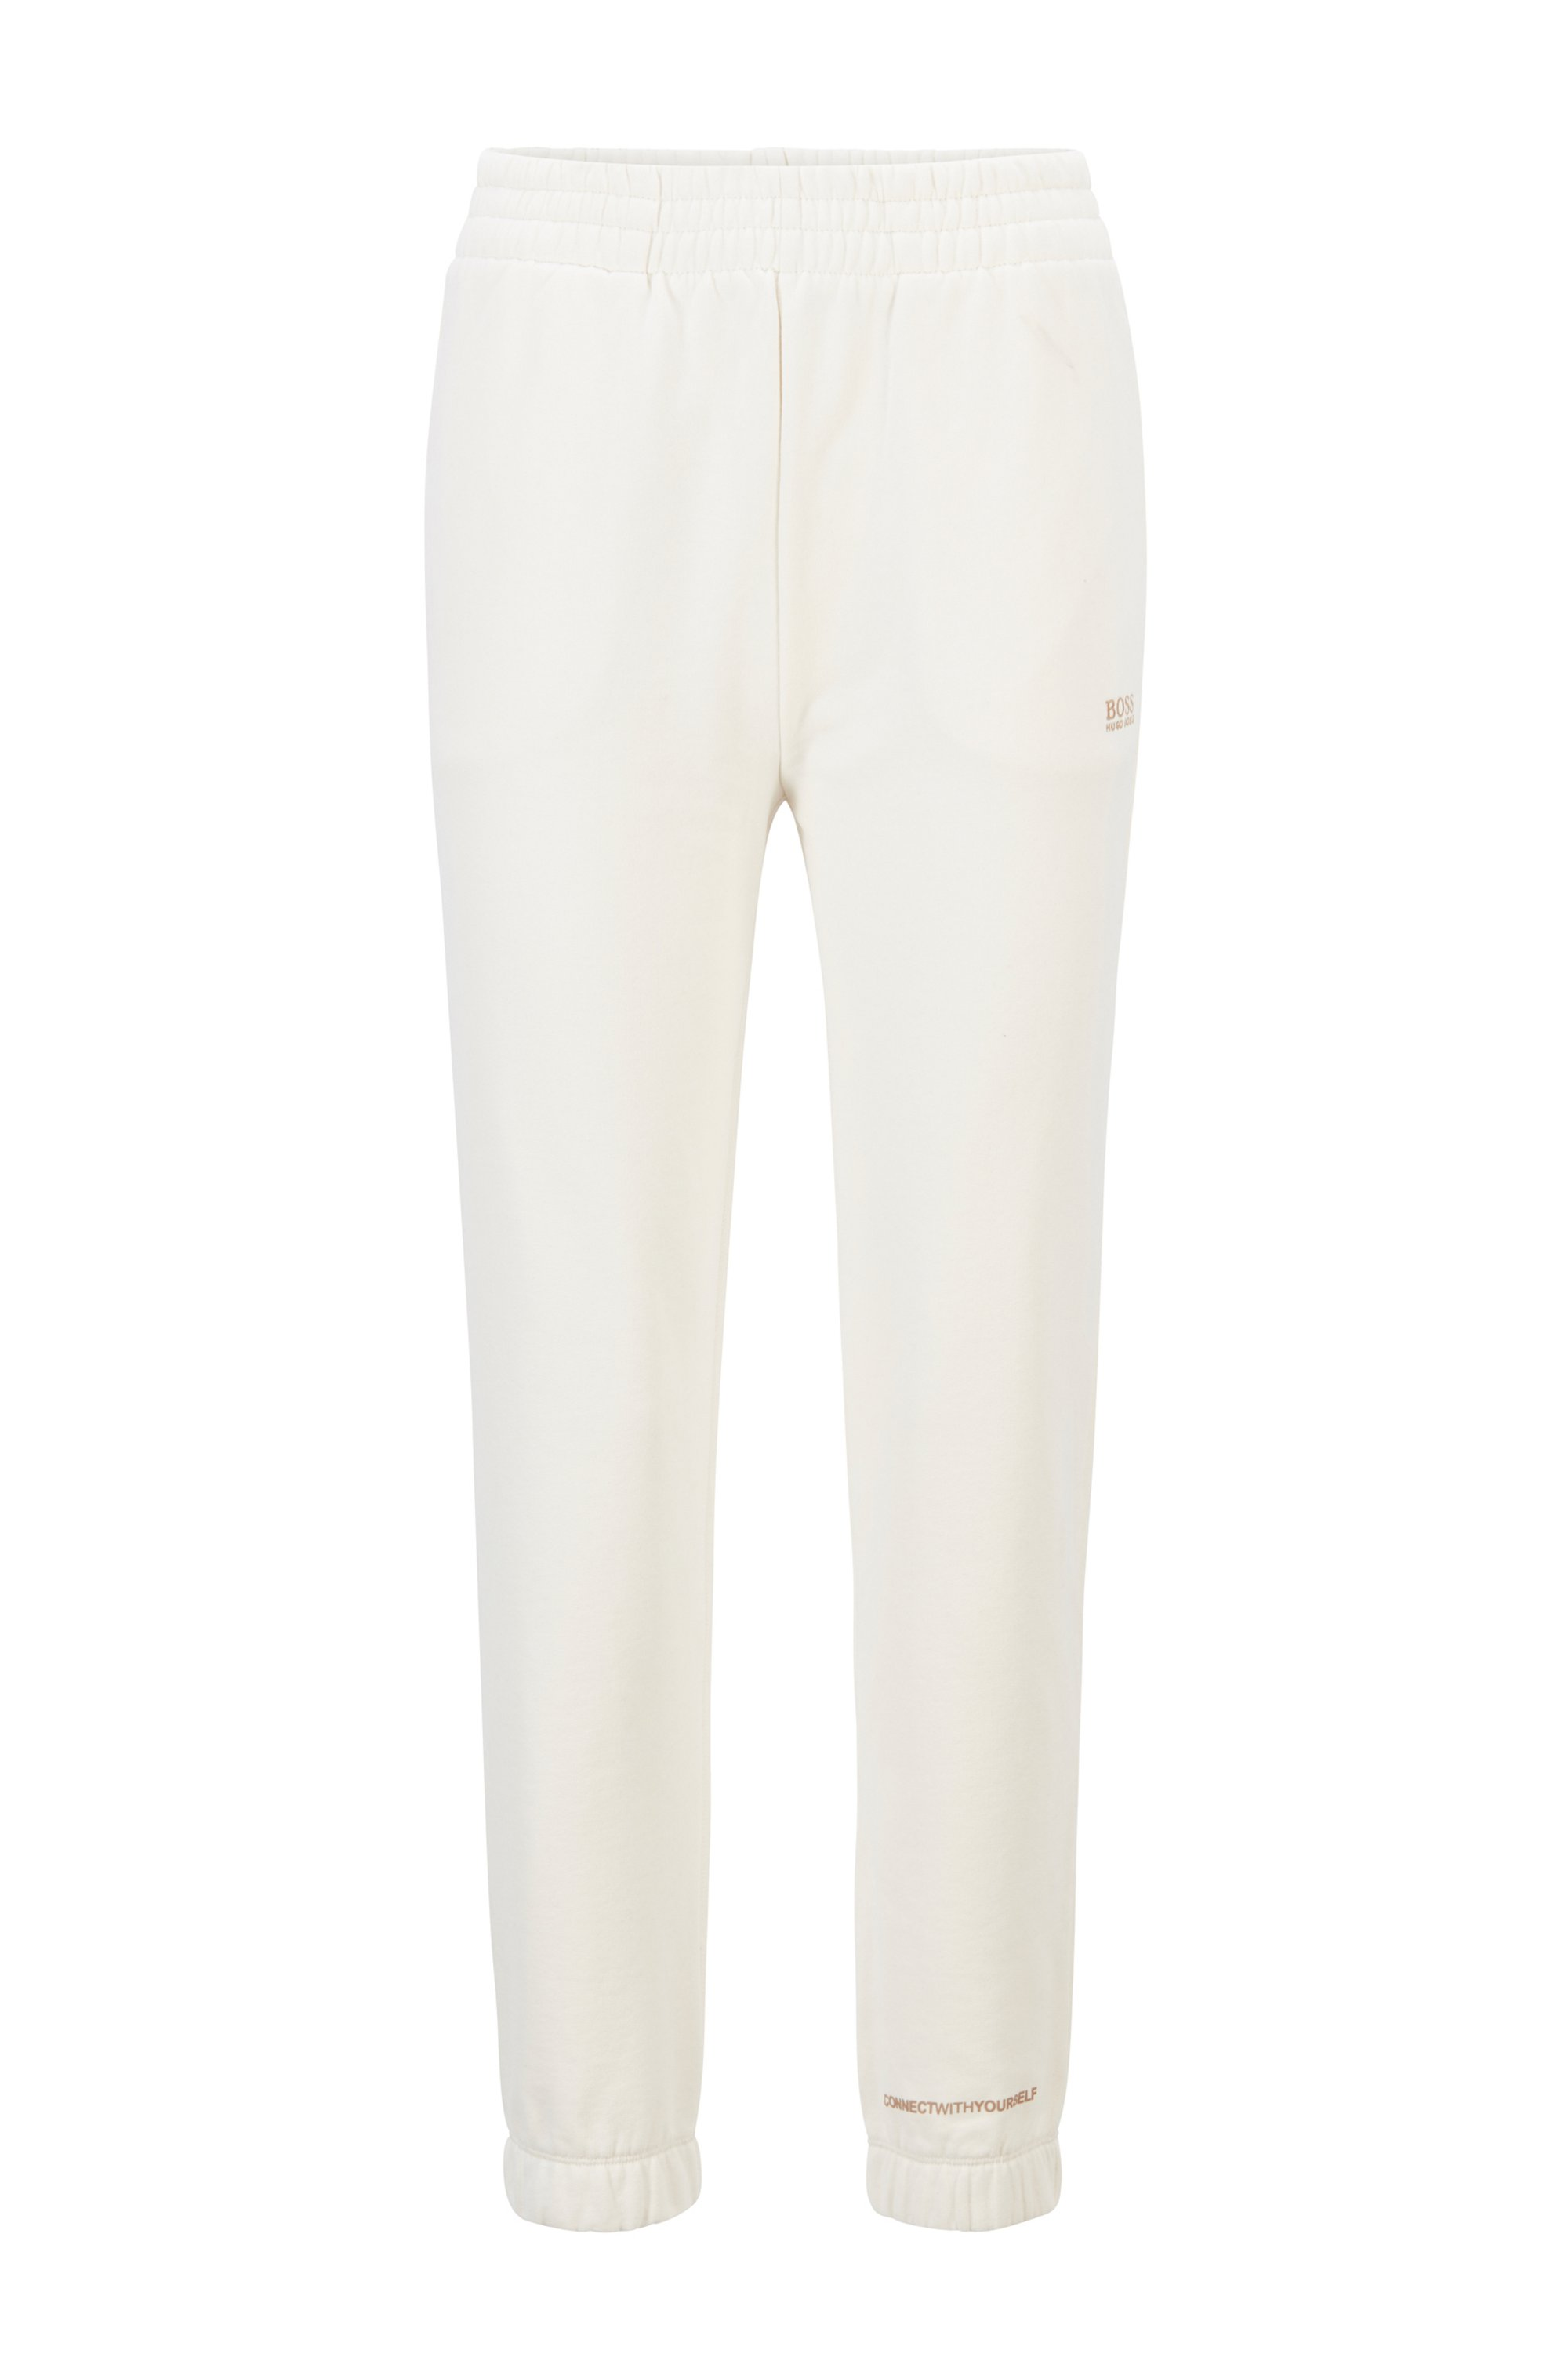 Cotton-blend tracksuit bottoms with logo print, White